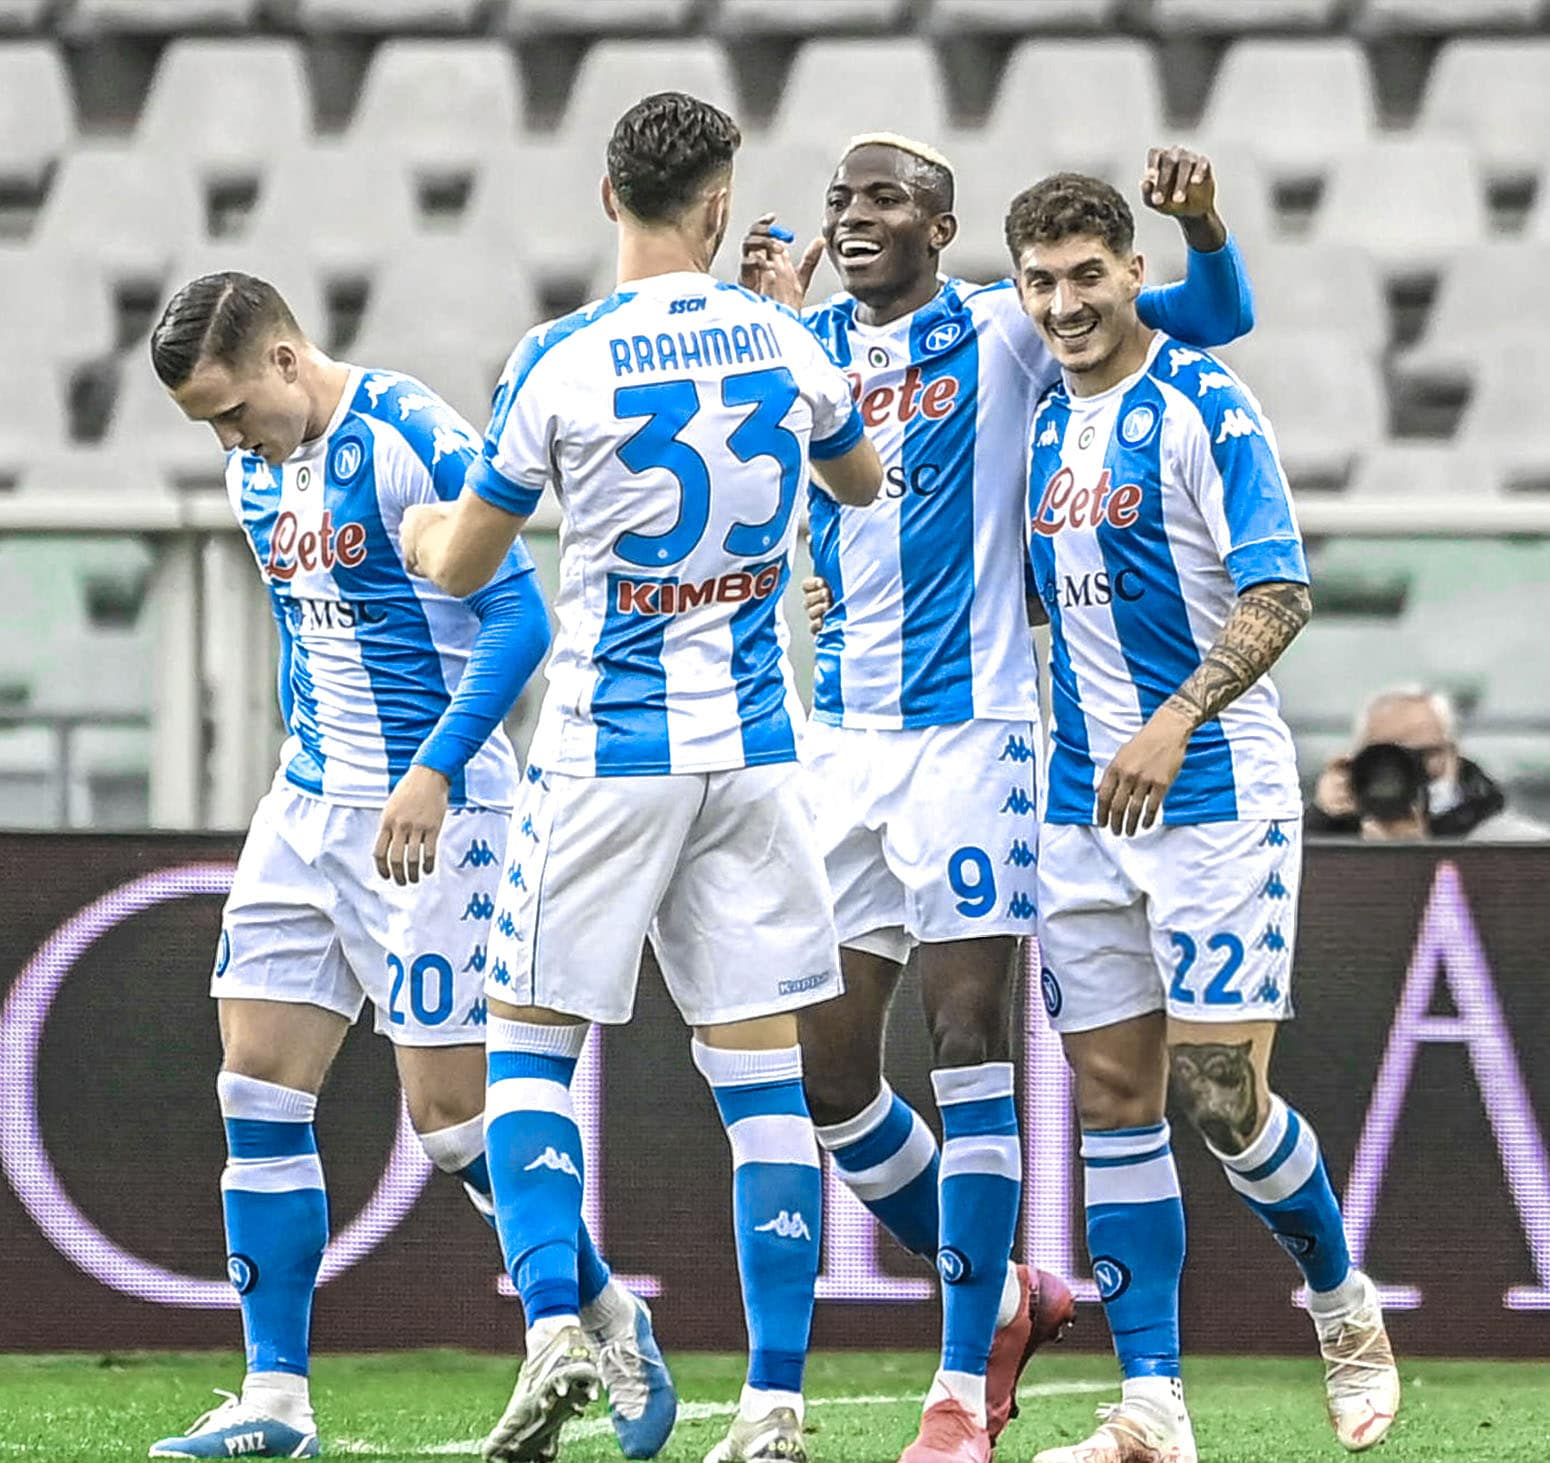 Serie A: Victor Osimhen Fires 8th Goal For Napoli